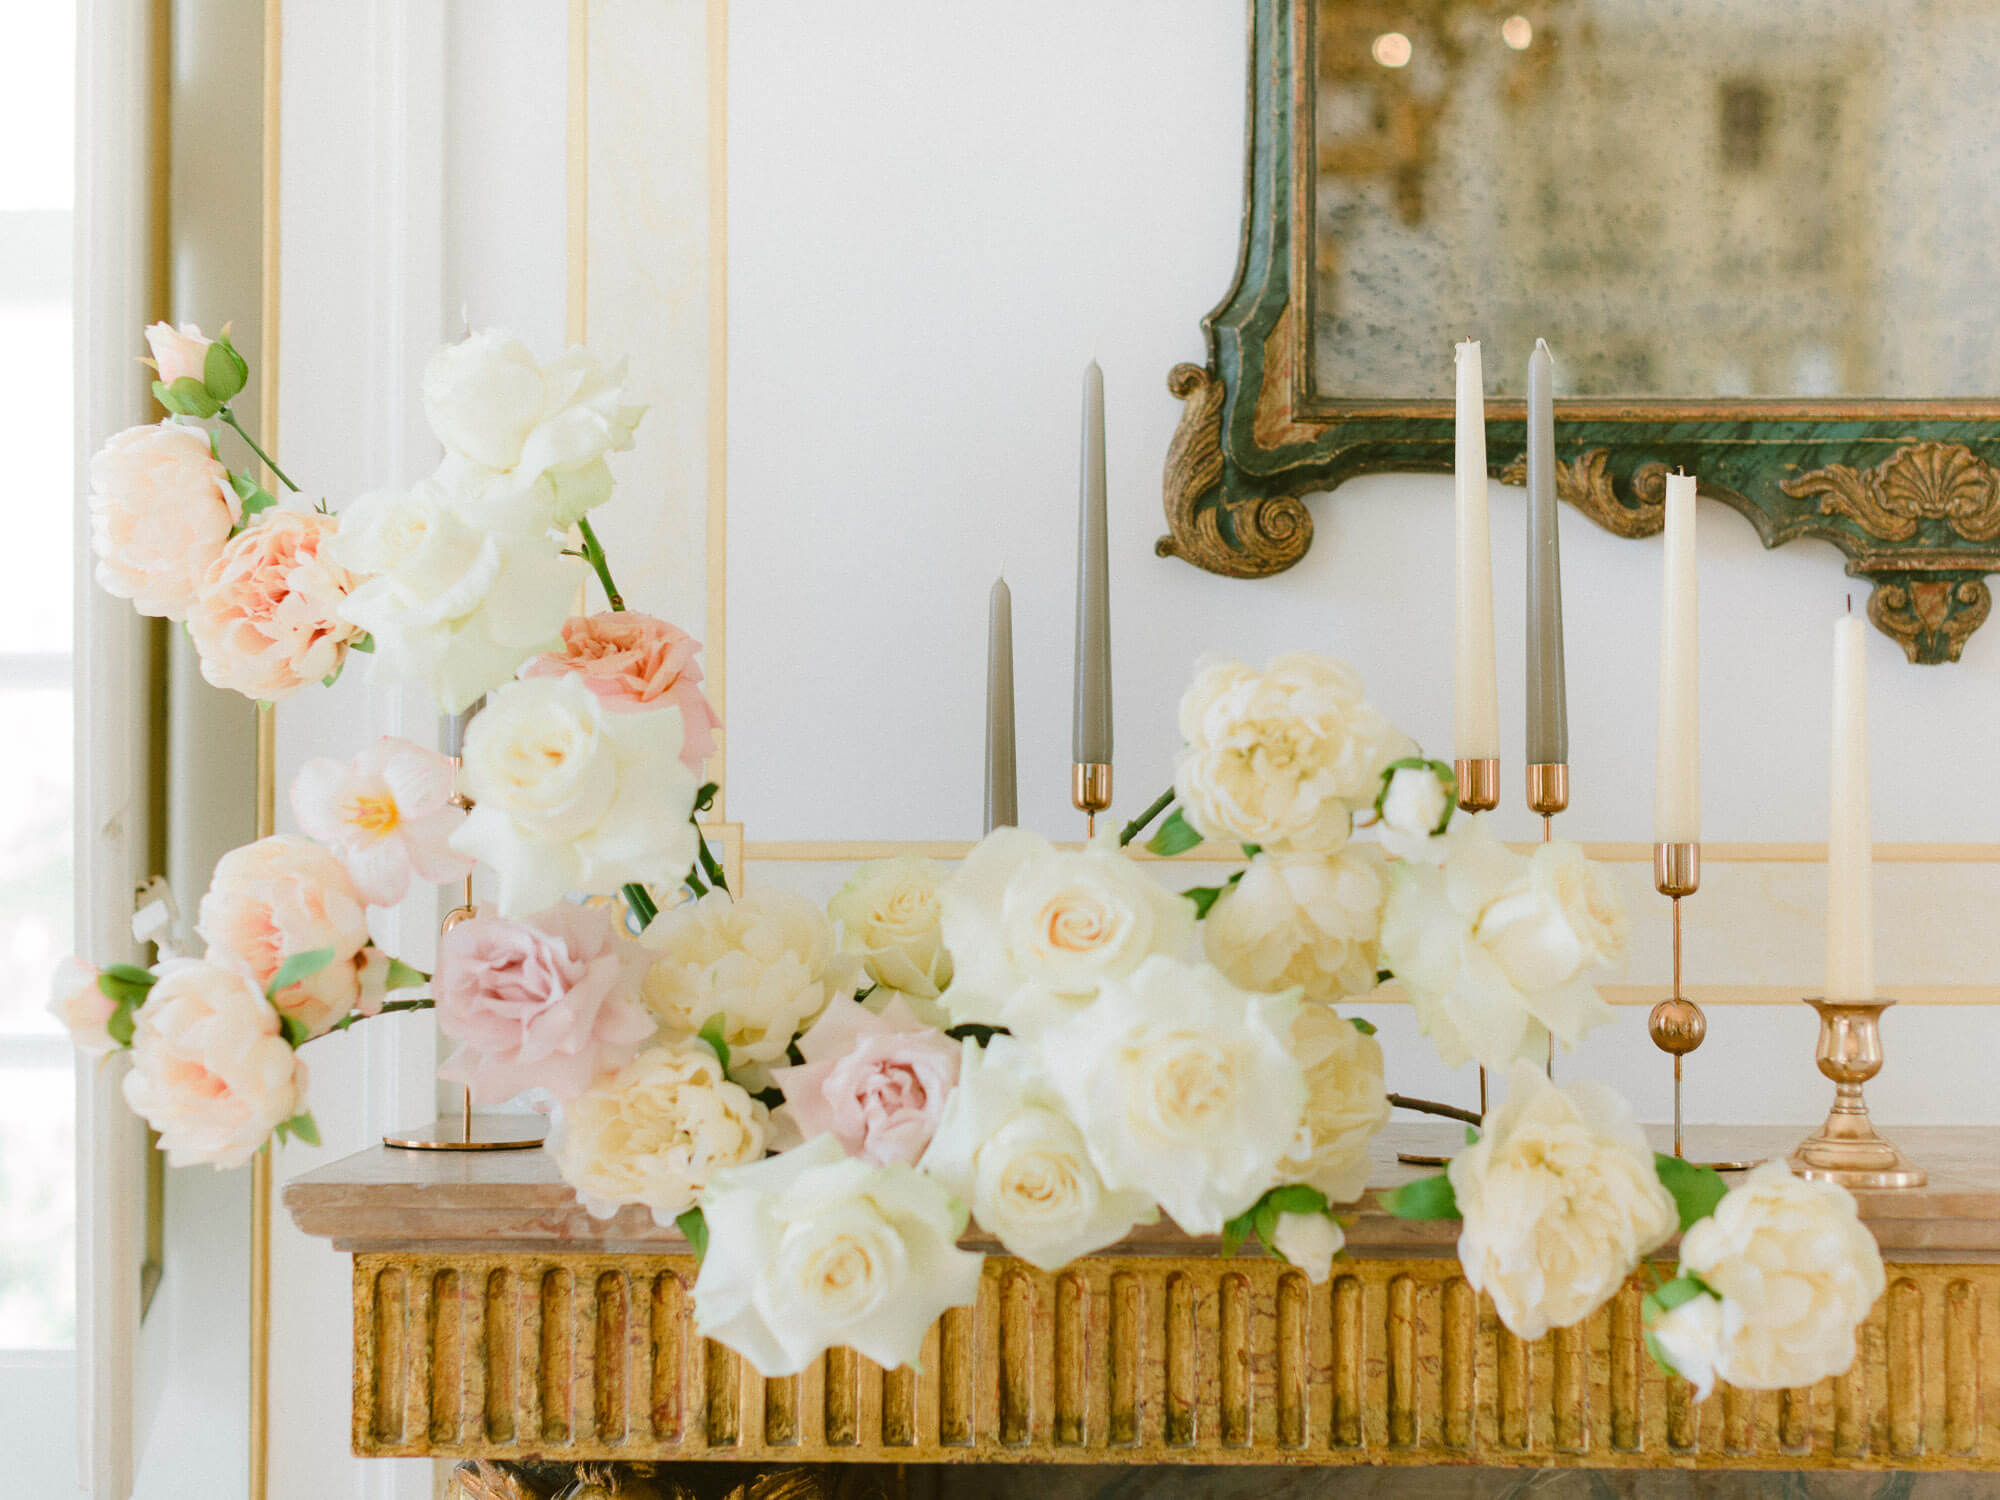 white and coral wedding floral centrepiece and candles photographed by Portugal Wedding Photographer at Palacio de Queluz